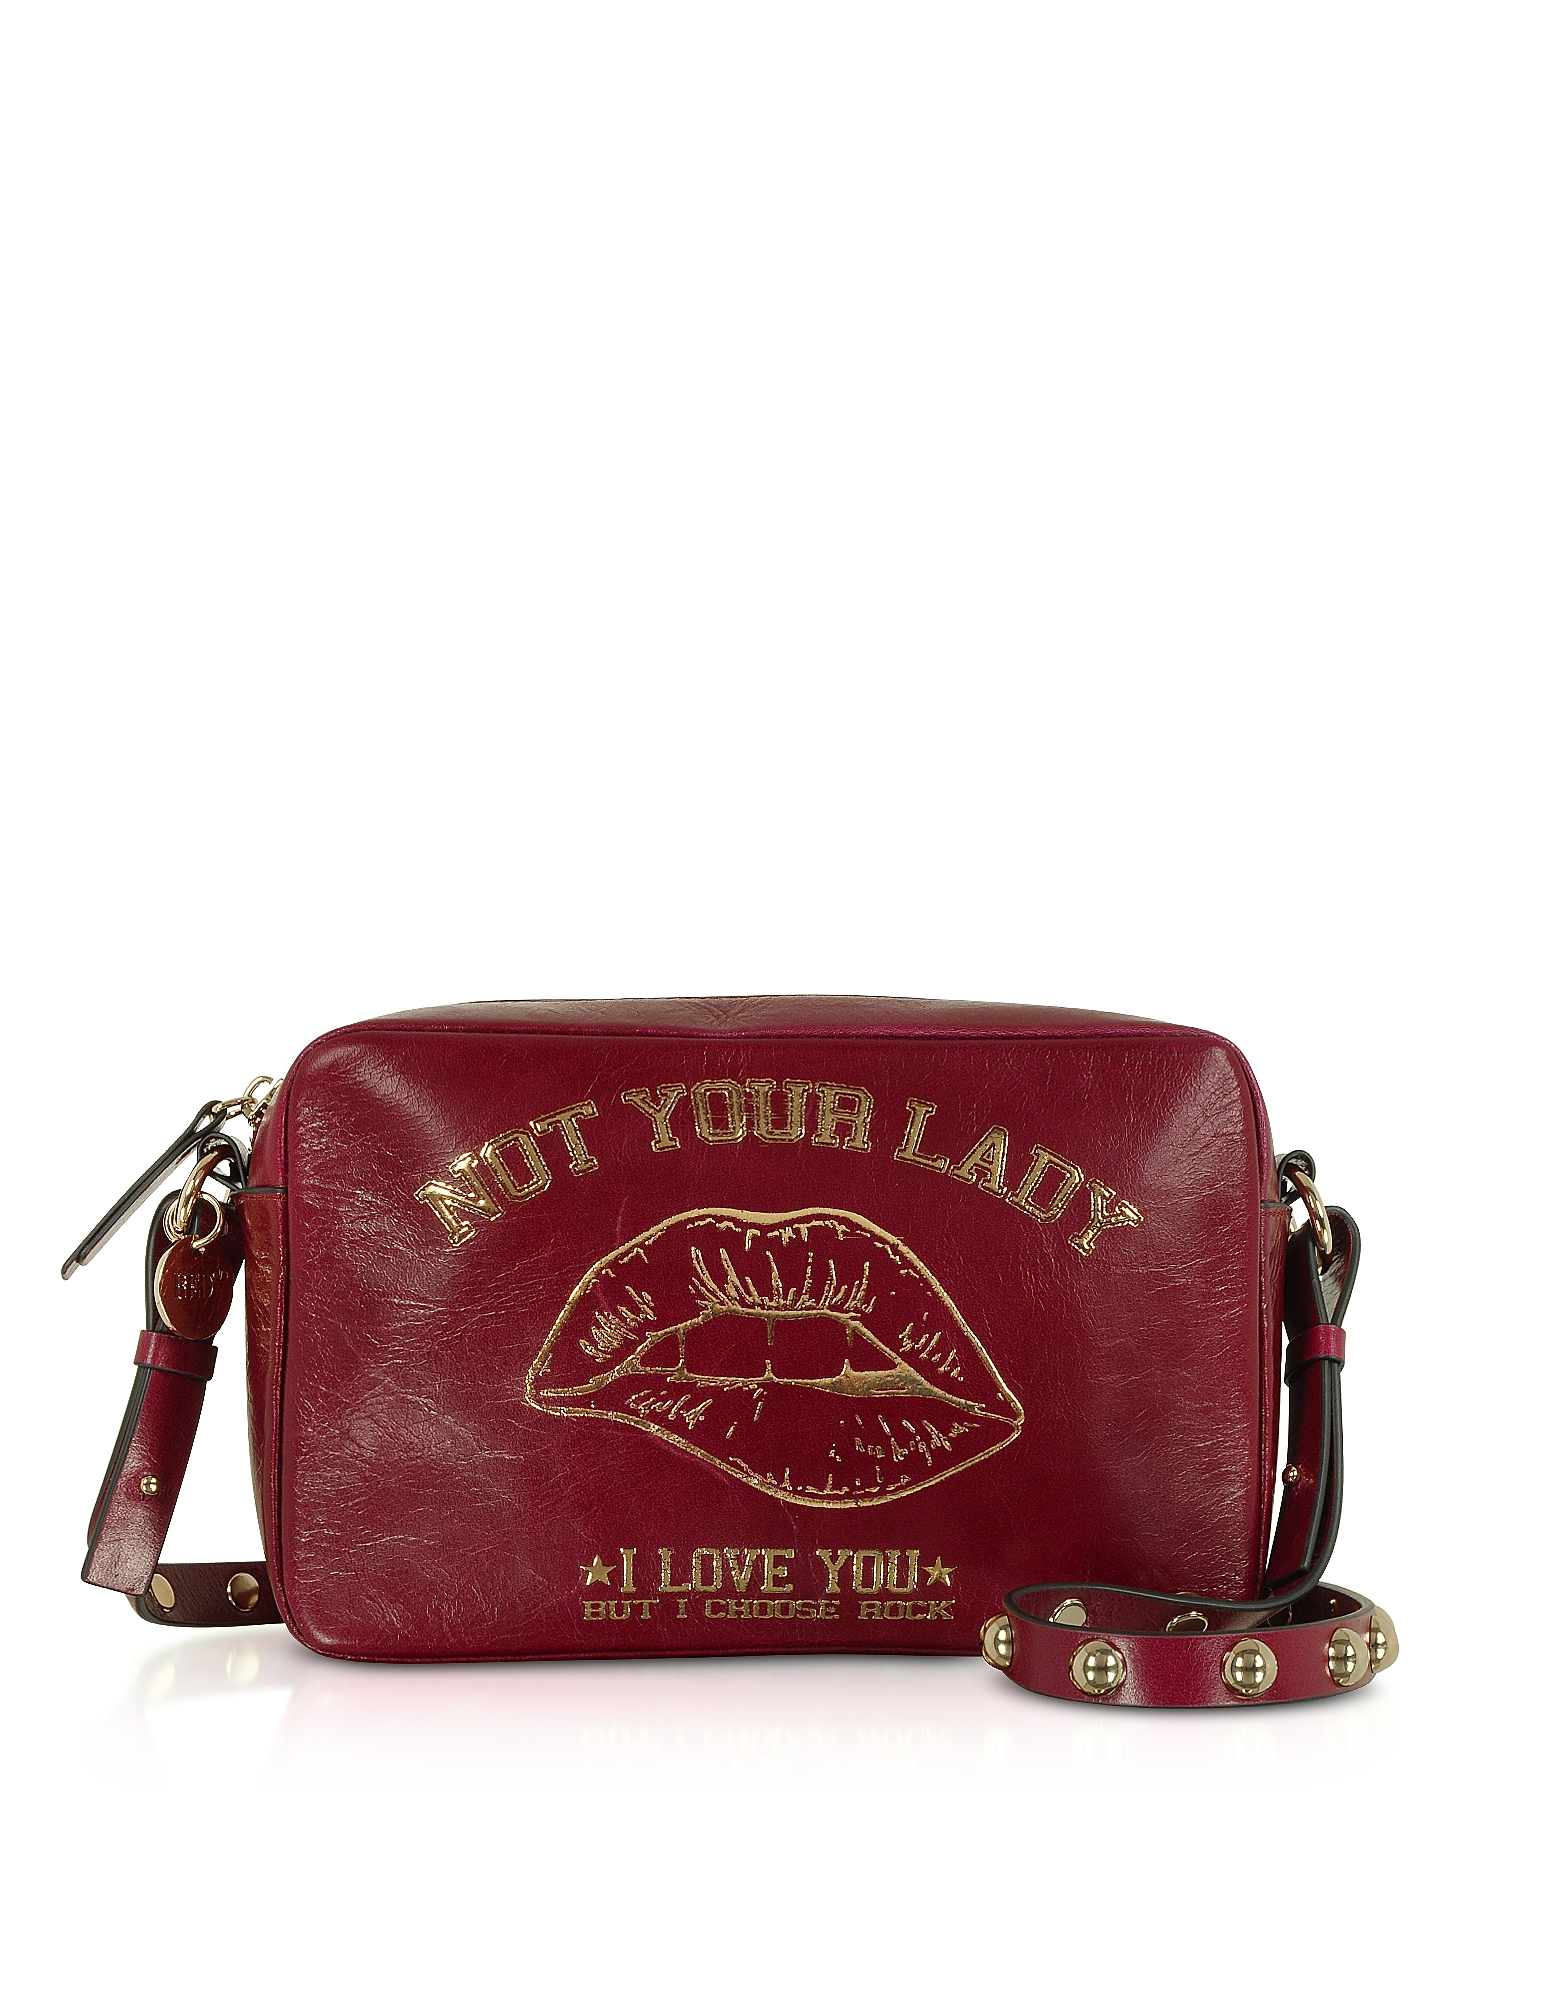 Not Your Lady Dark Red Crossbody Bag